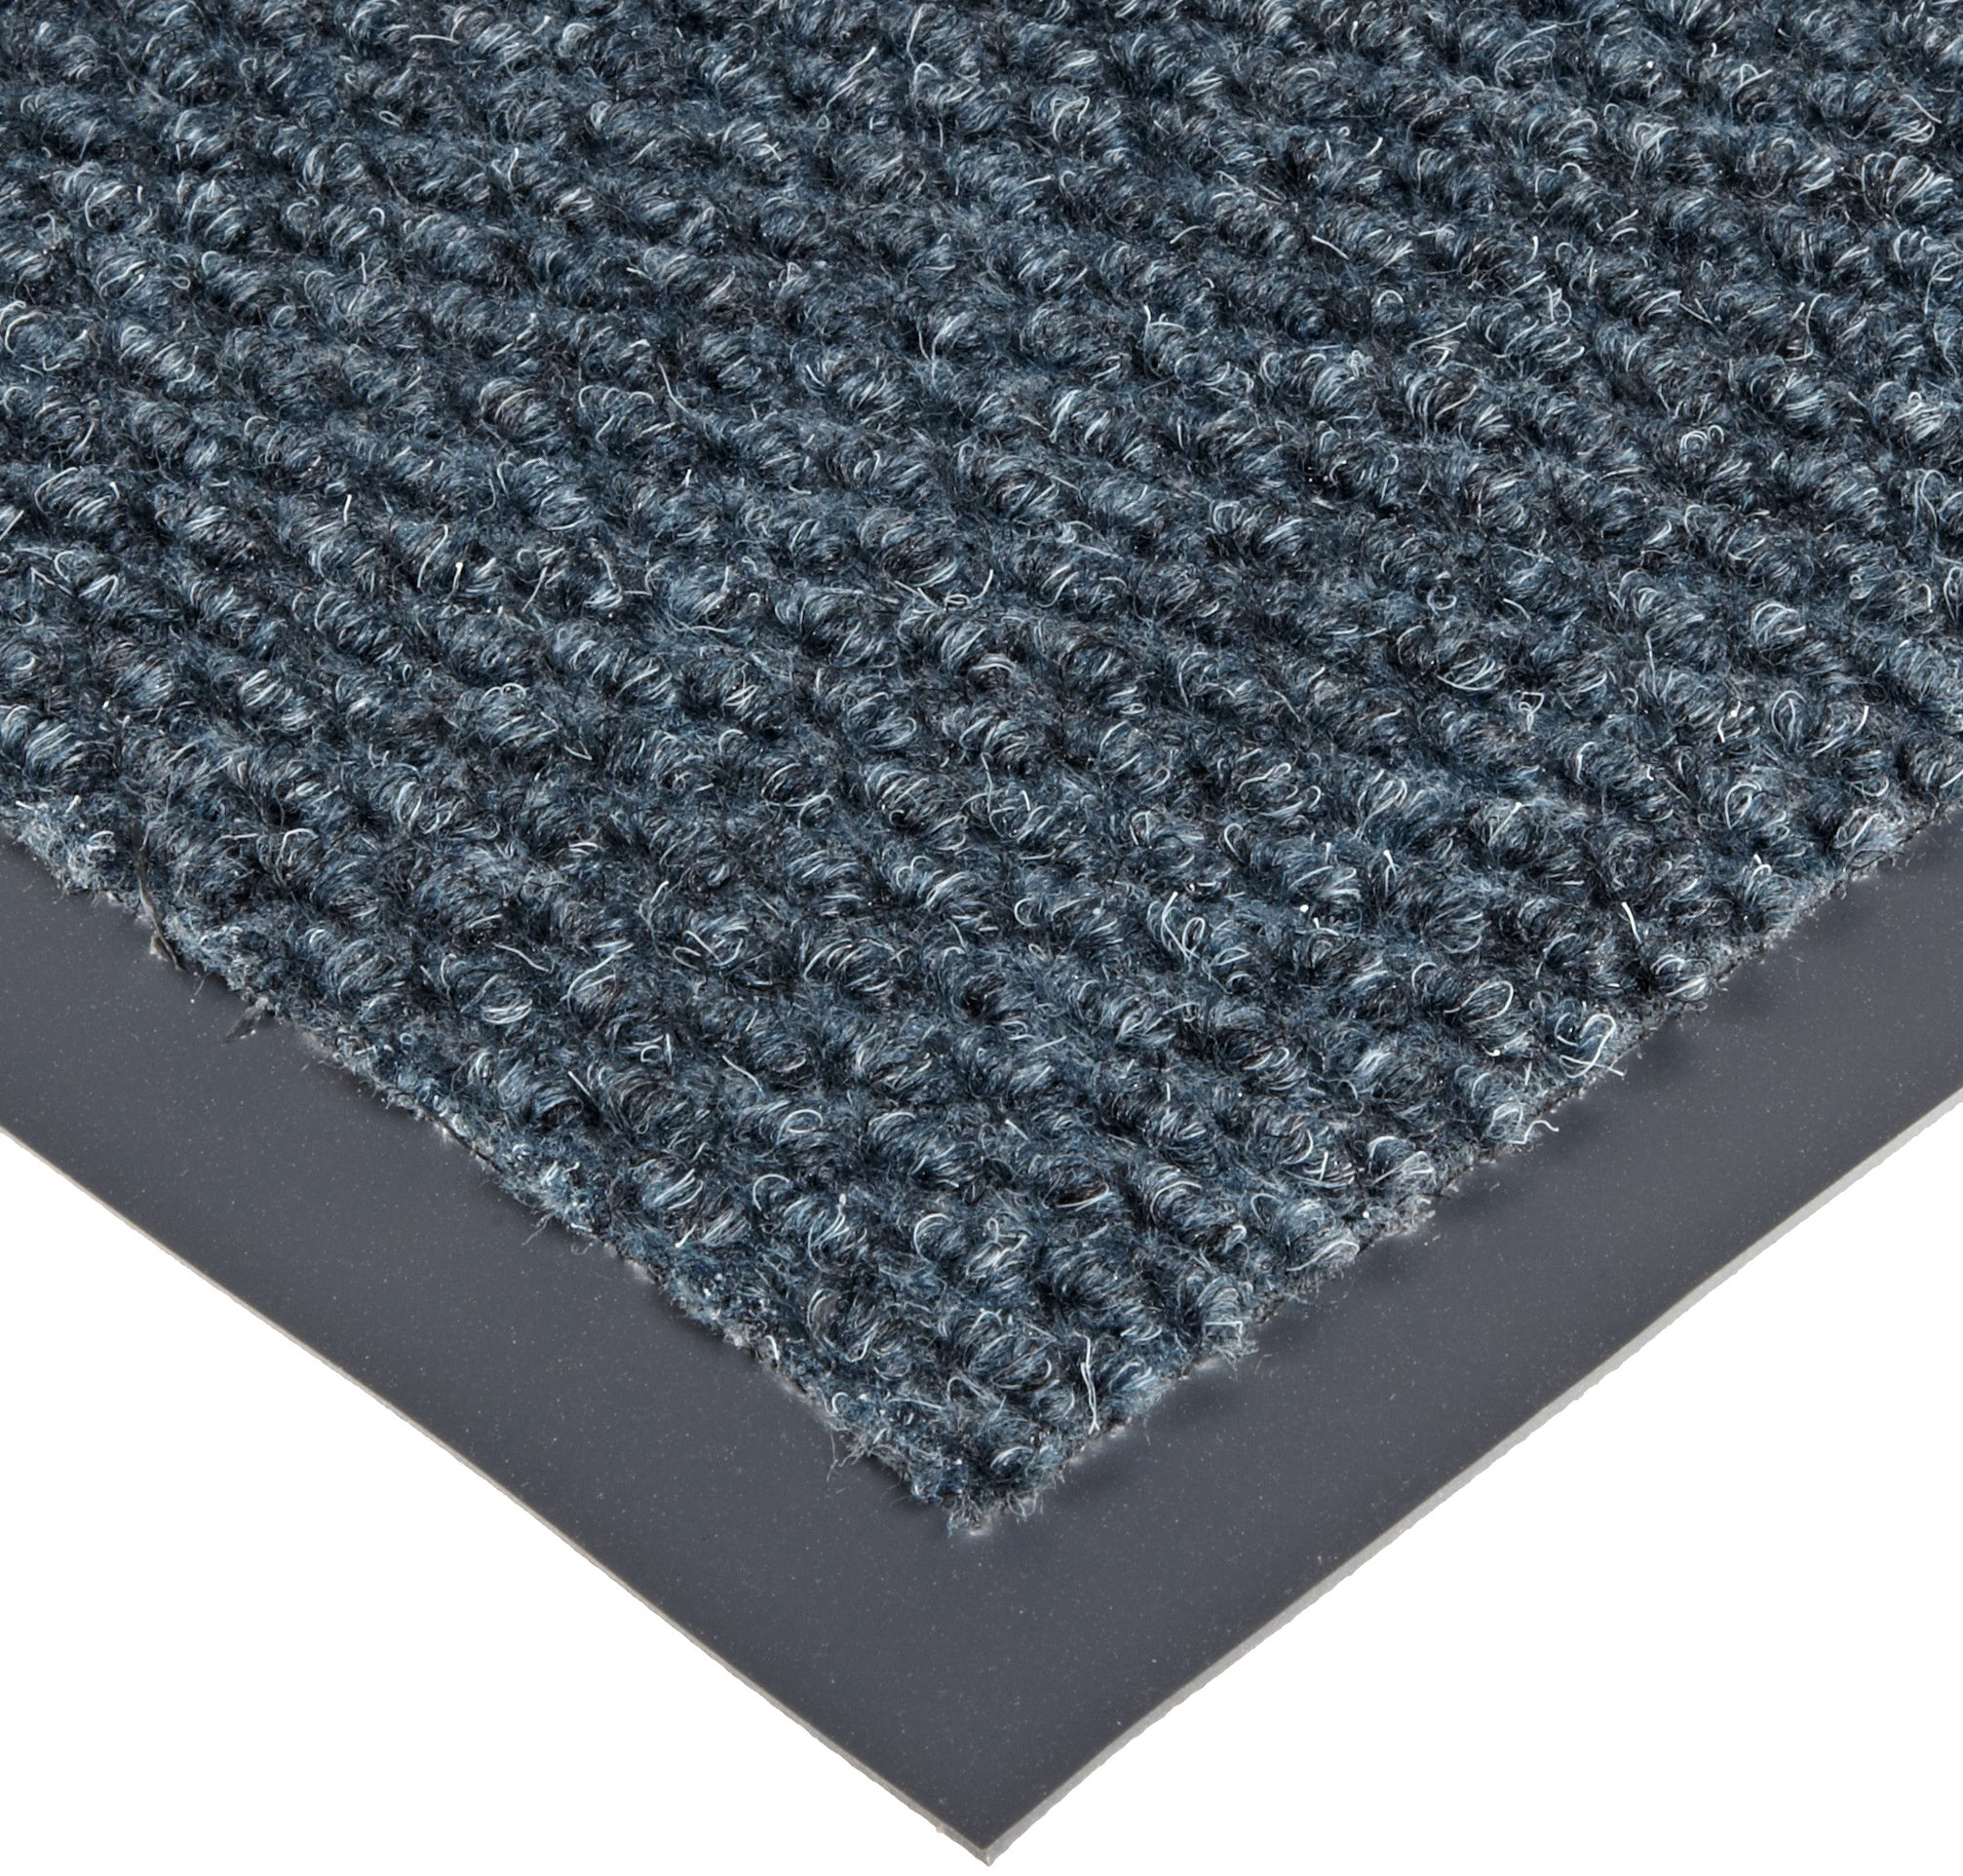 Notrax 136 Polynib Entrance Mat, for Lobbies and Indoor Entranceways, 4' Width x 8' Length x 1/4'' Thickness, Slate Blue